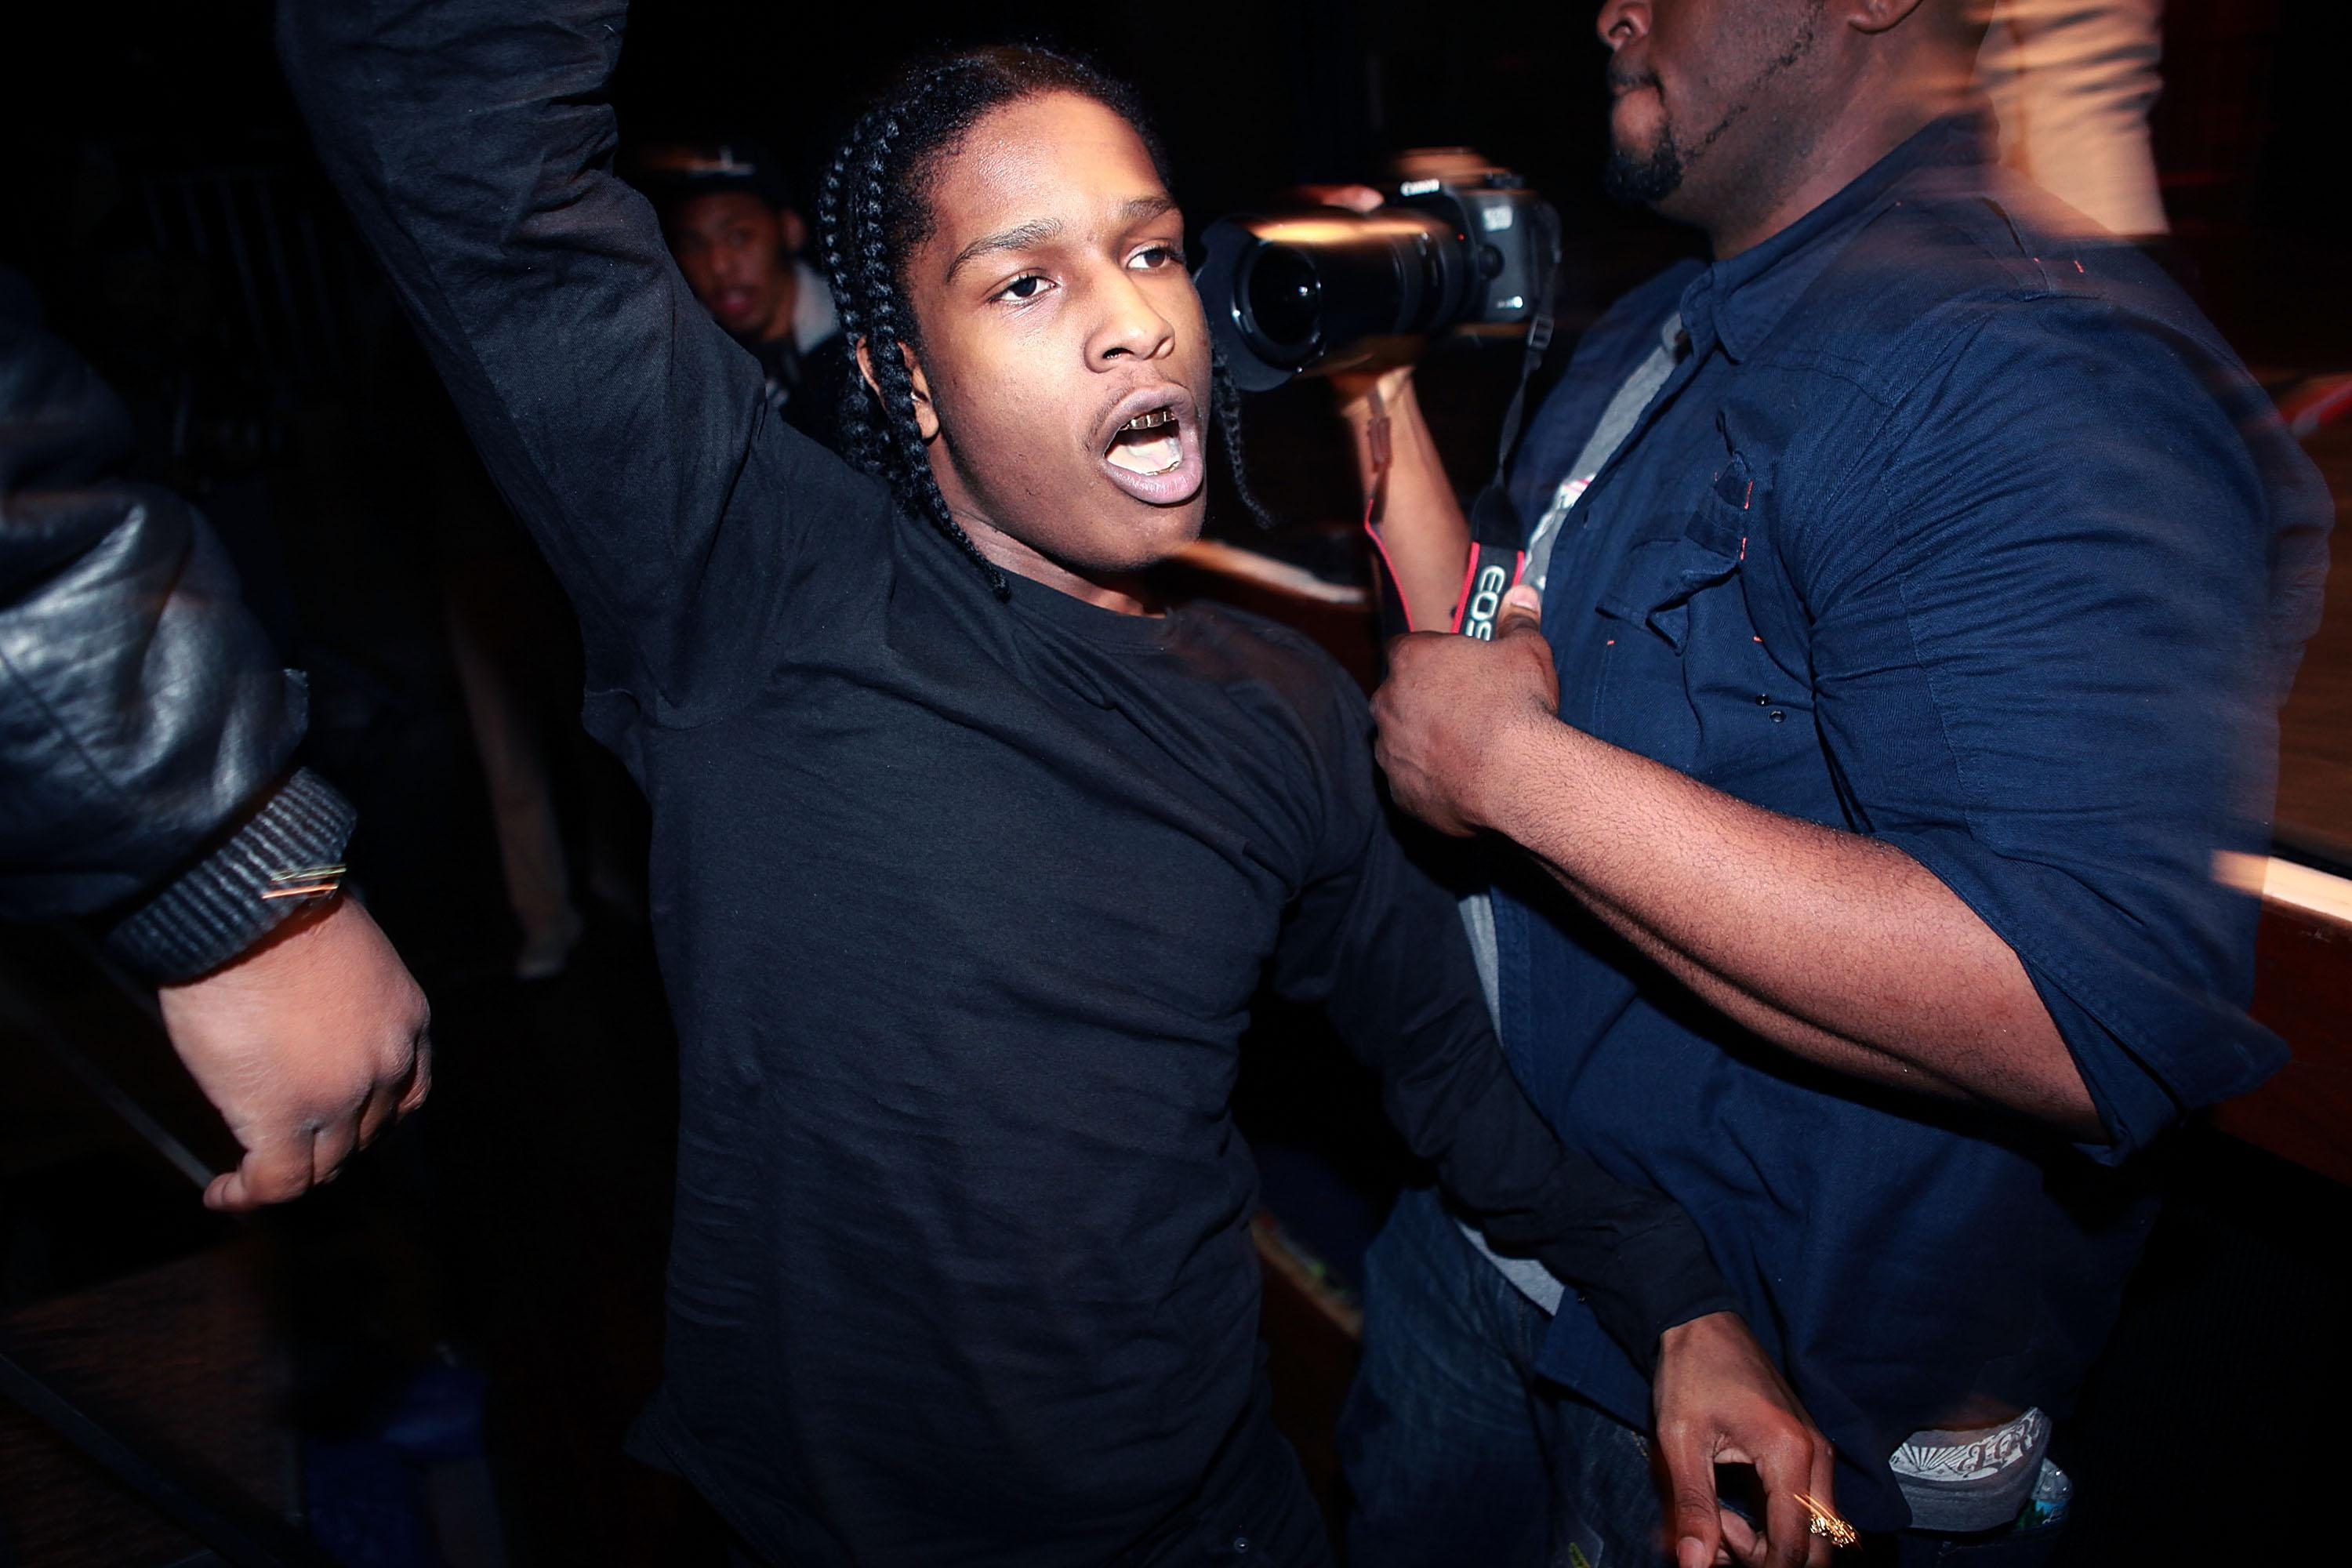 A-Track And A$AP Mob In Concert - New York, NY